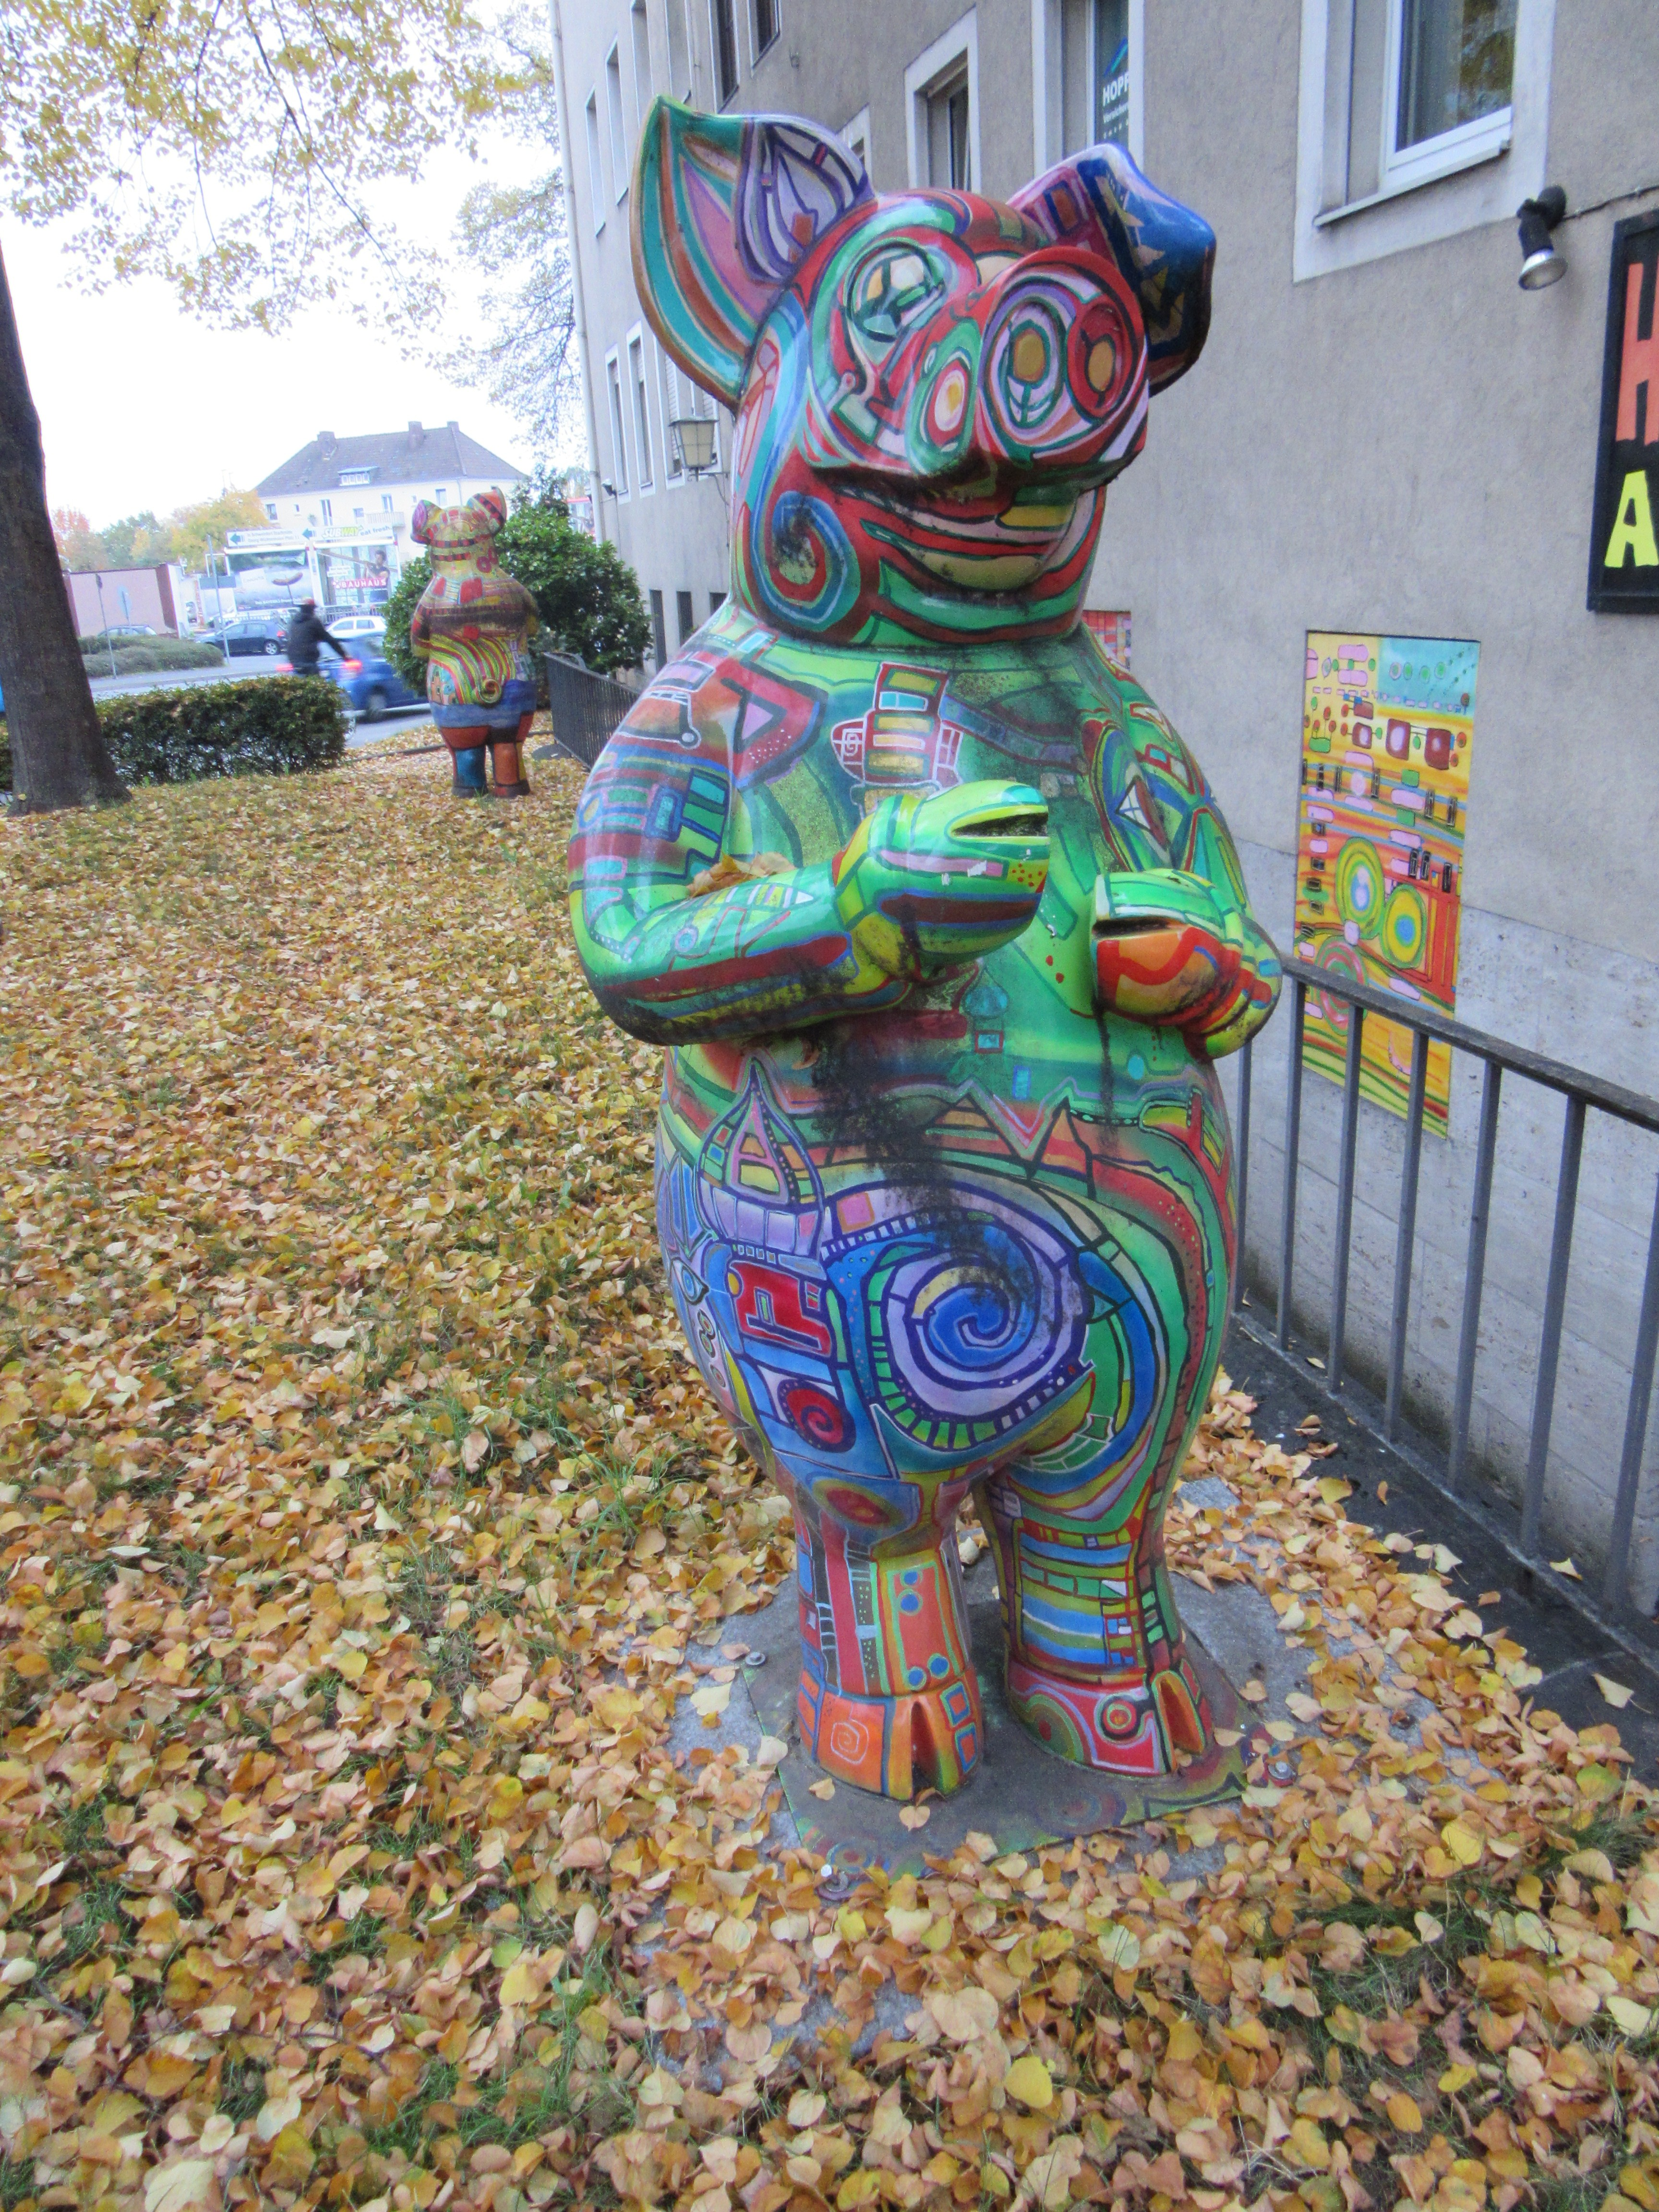 One of the more colorful Schweinfurt pigs.